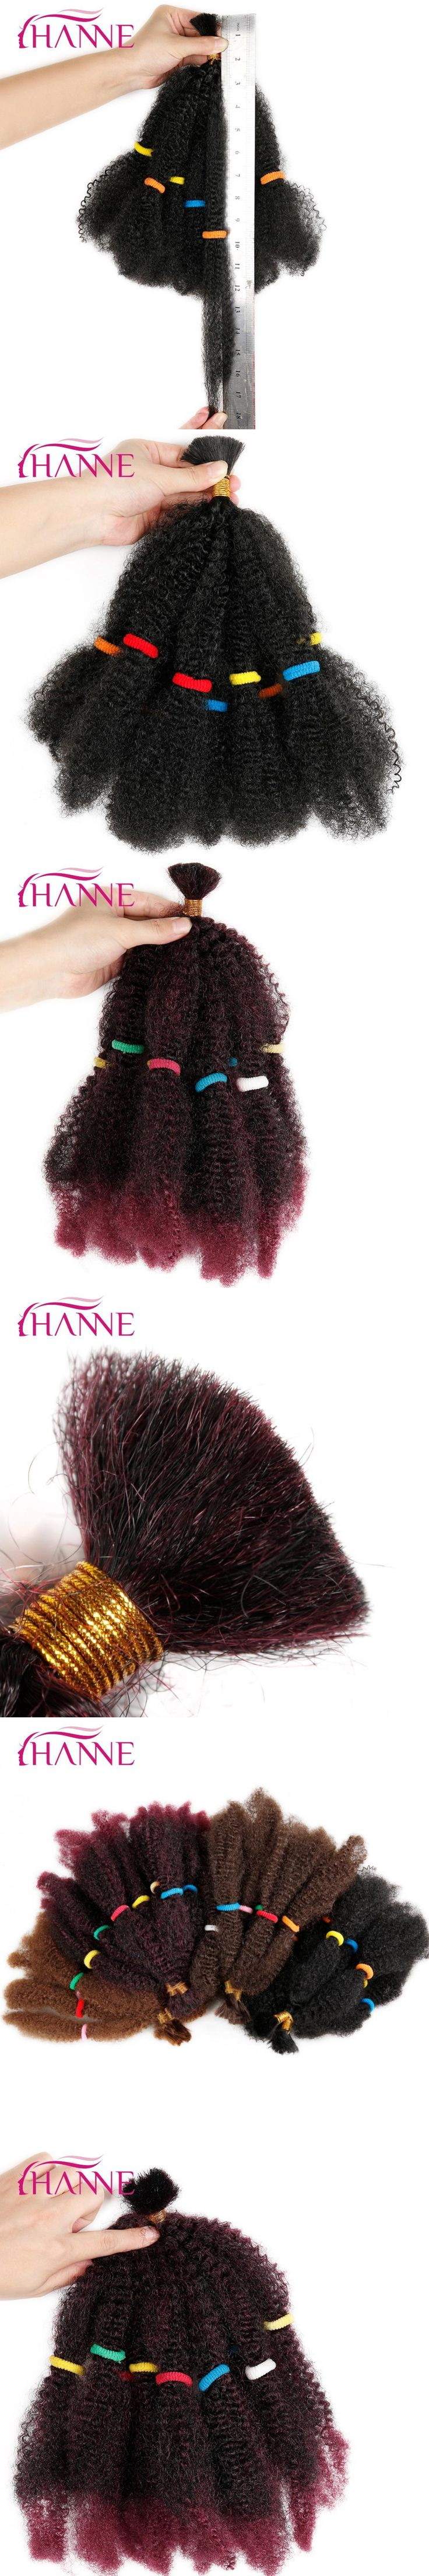 "HANNE Bulk Hair Small Afro Kinky Curly Extensions 12"" Black Or Ombre Mixed 1B#BUG Pre Braided Hair Extension 1pc Synthetic Weave"